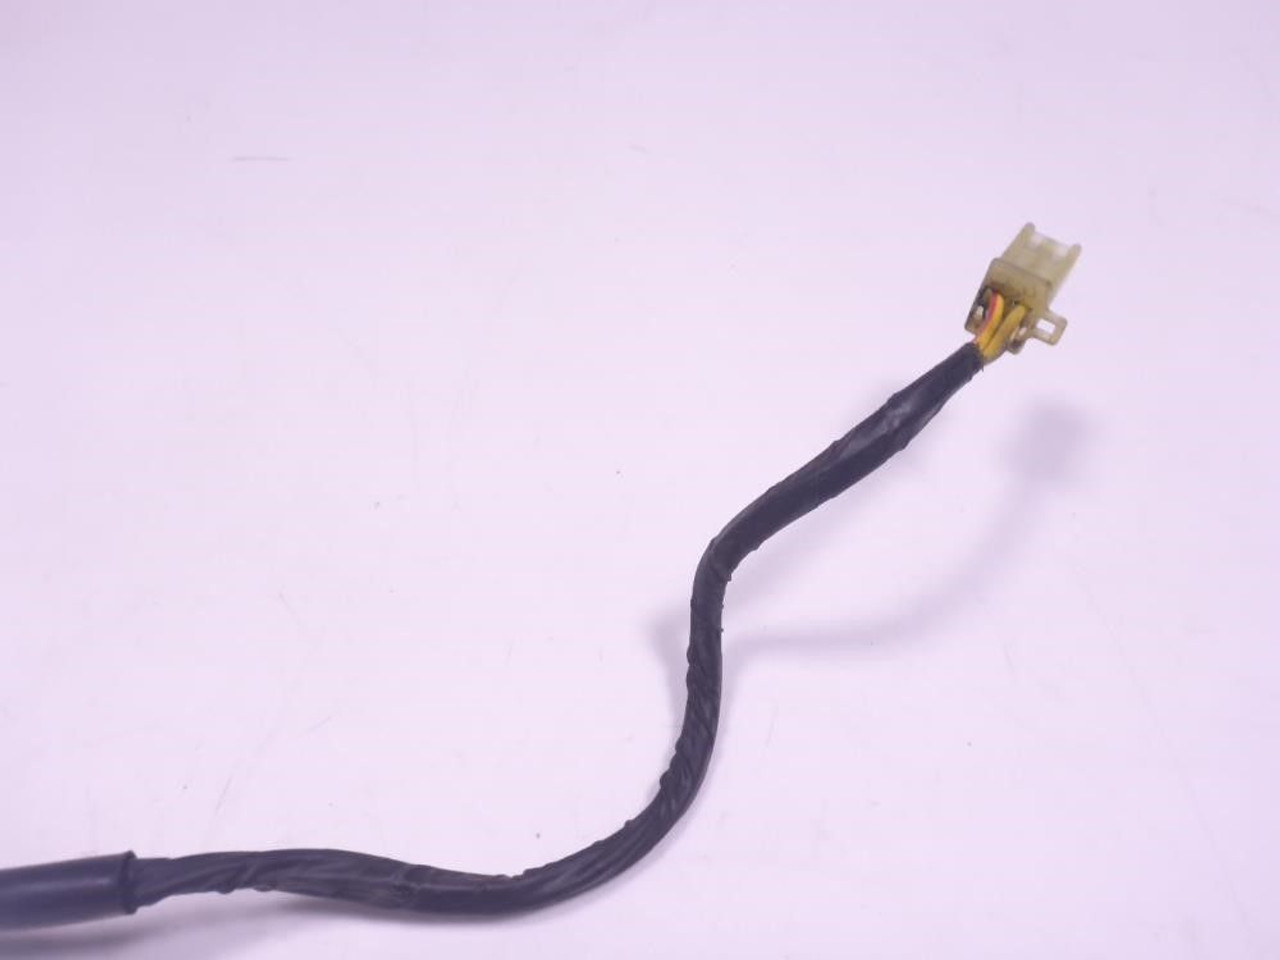 00 honda goldwing gl1500 ignition coil wiring harness Wiring Harness 1986 Honda Goldwing